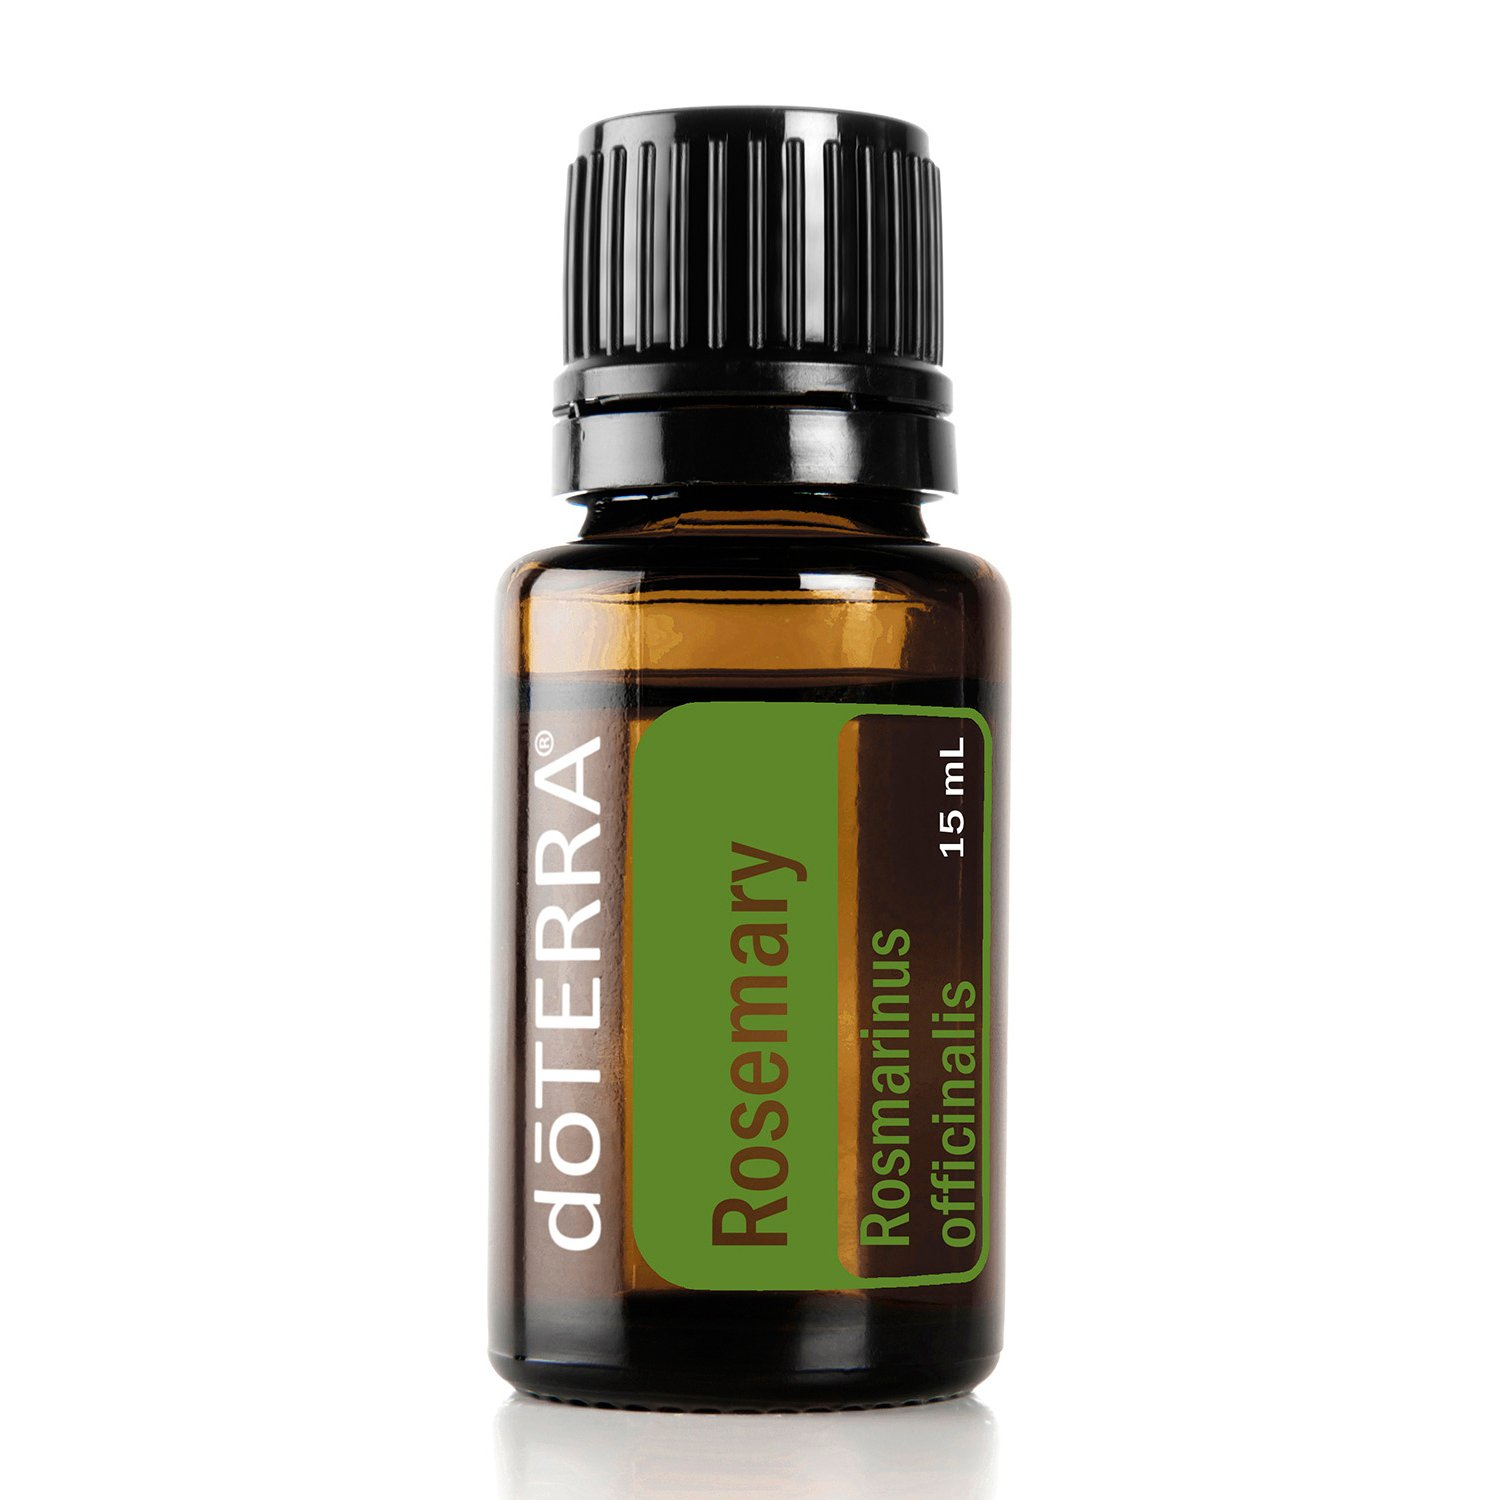 doTERRA - Rosemary Essential Oil - Supports Healthy Digestion and Respiratory Function, Helps Reduce Nervous Tension and Occasional Fatigue; for Diffusion, Internal, or Topical Use - 15 mL by DoTerra